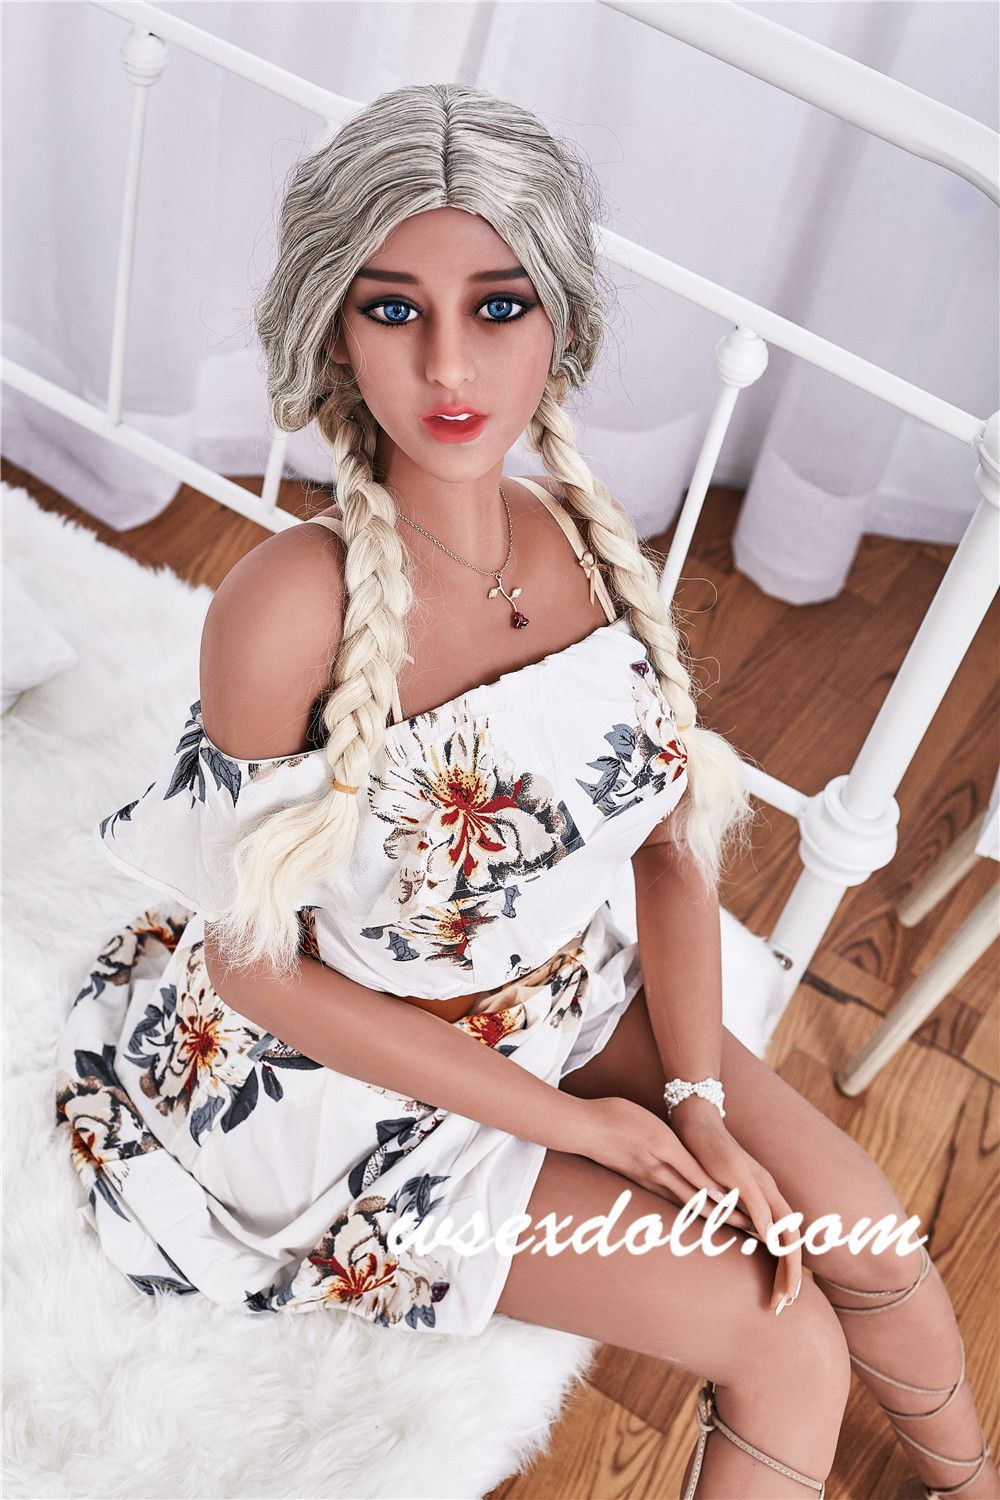 Full Body Realistic Tpe Sex Doll With Blonde Hair